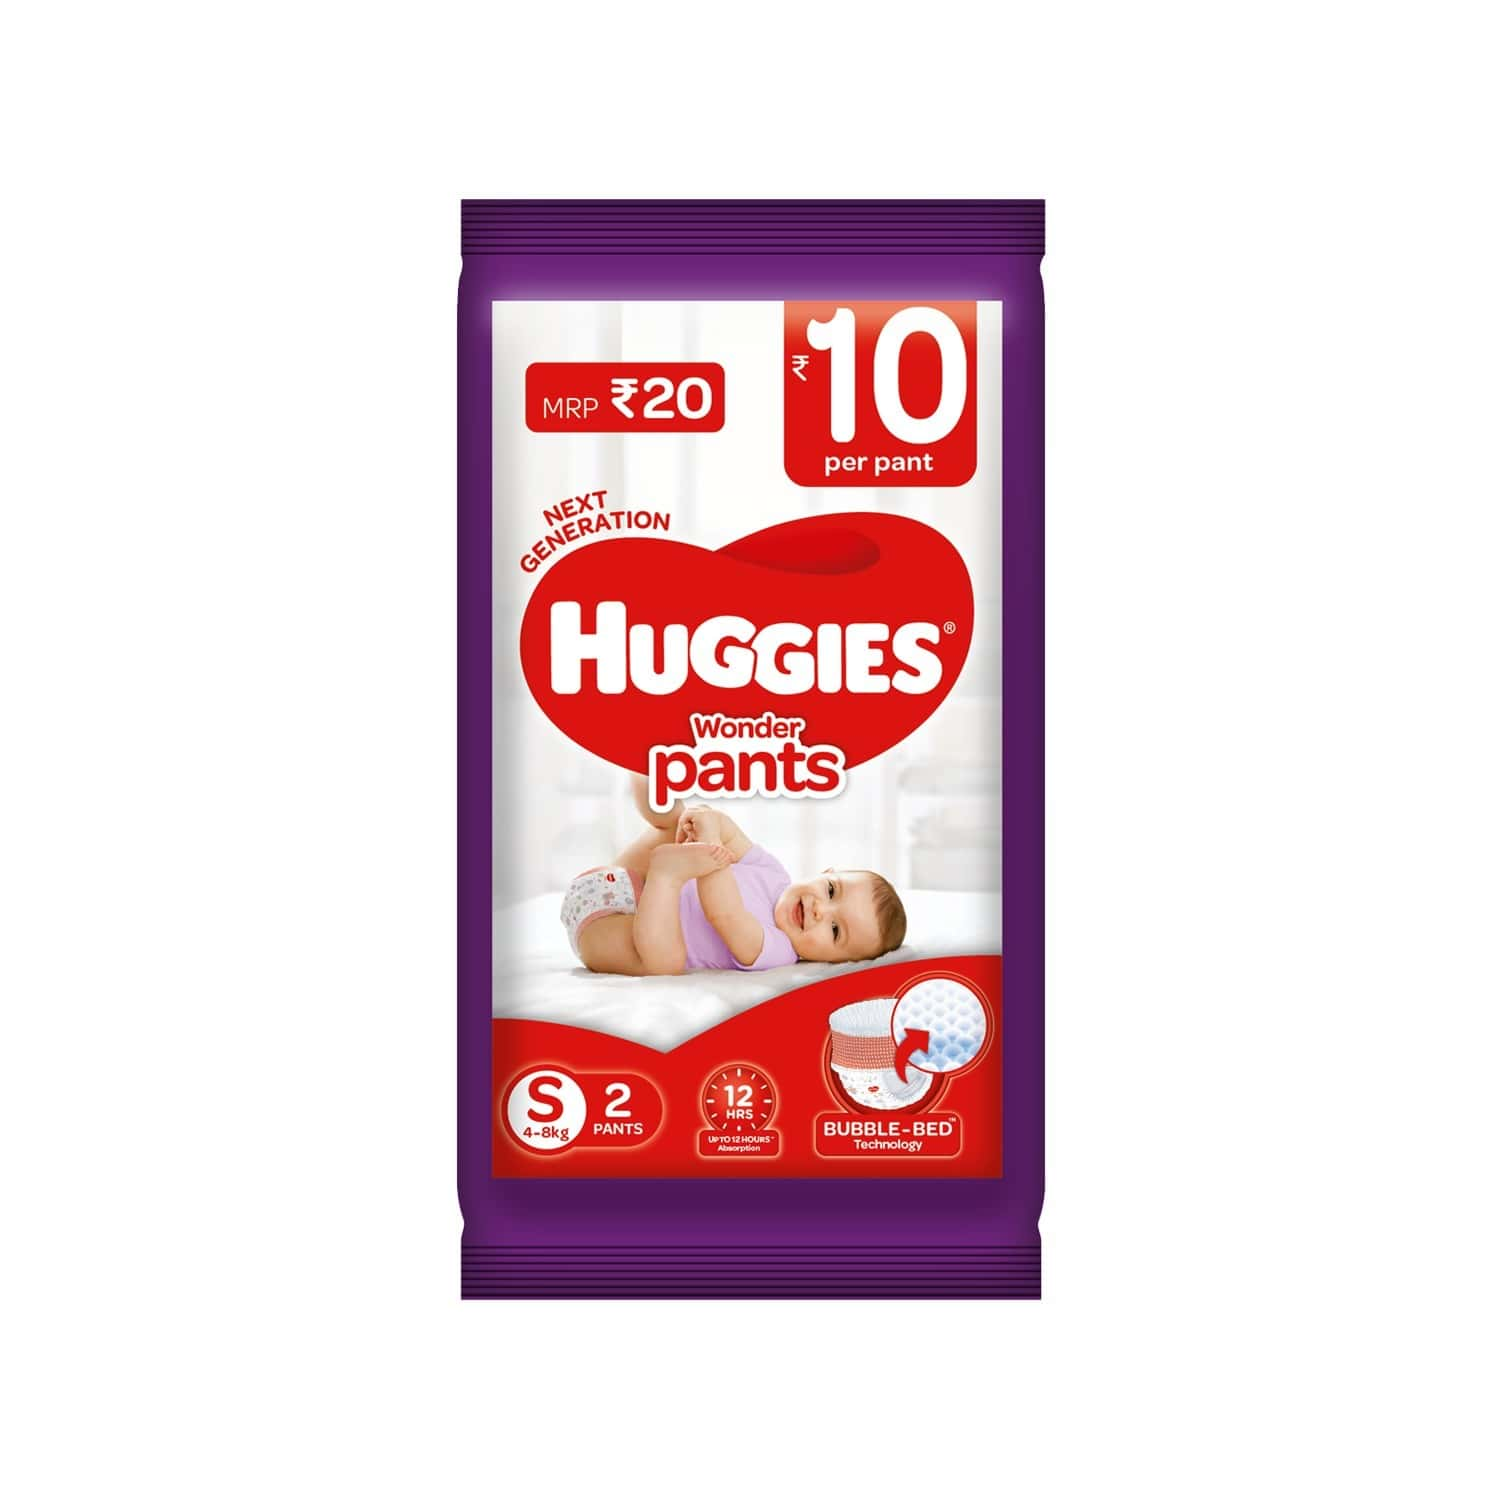 Huggies Wonder Pants Diapers, Small Size - 2 Count